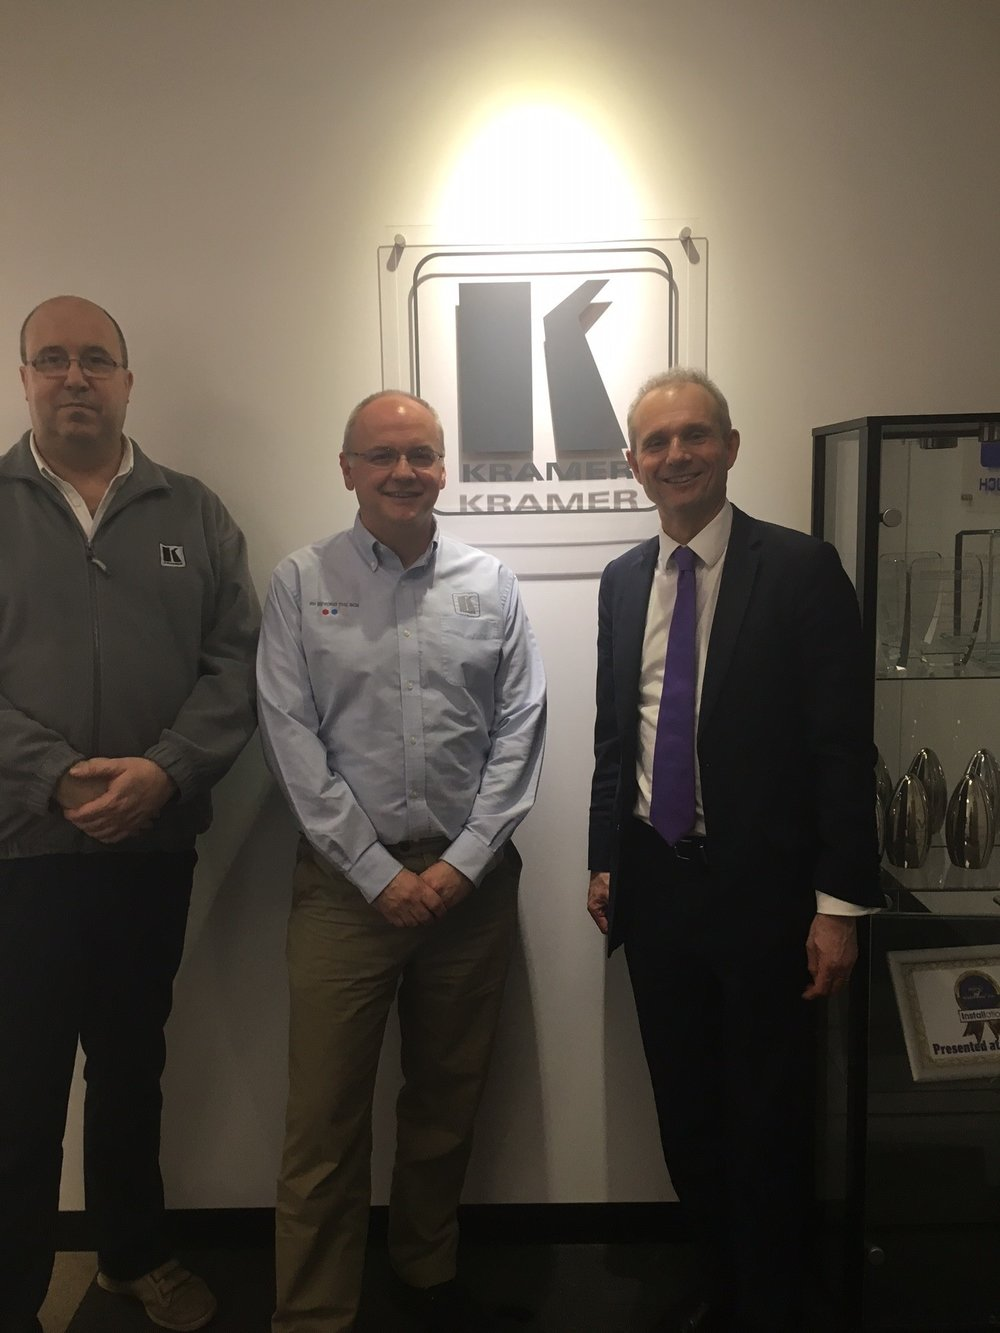 David meeting National Sales Manager Andrew Smith and Marketing Manager Nick Mawer